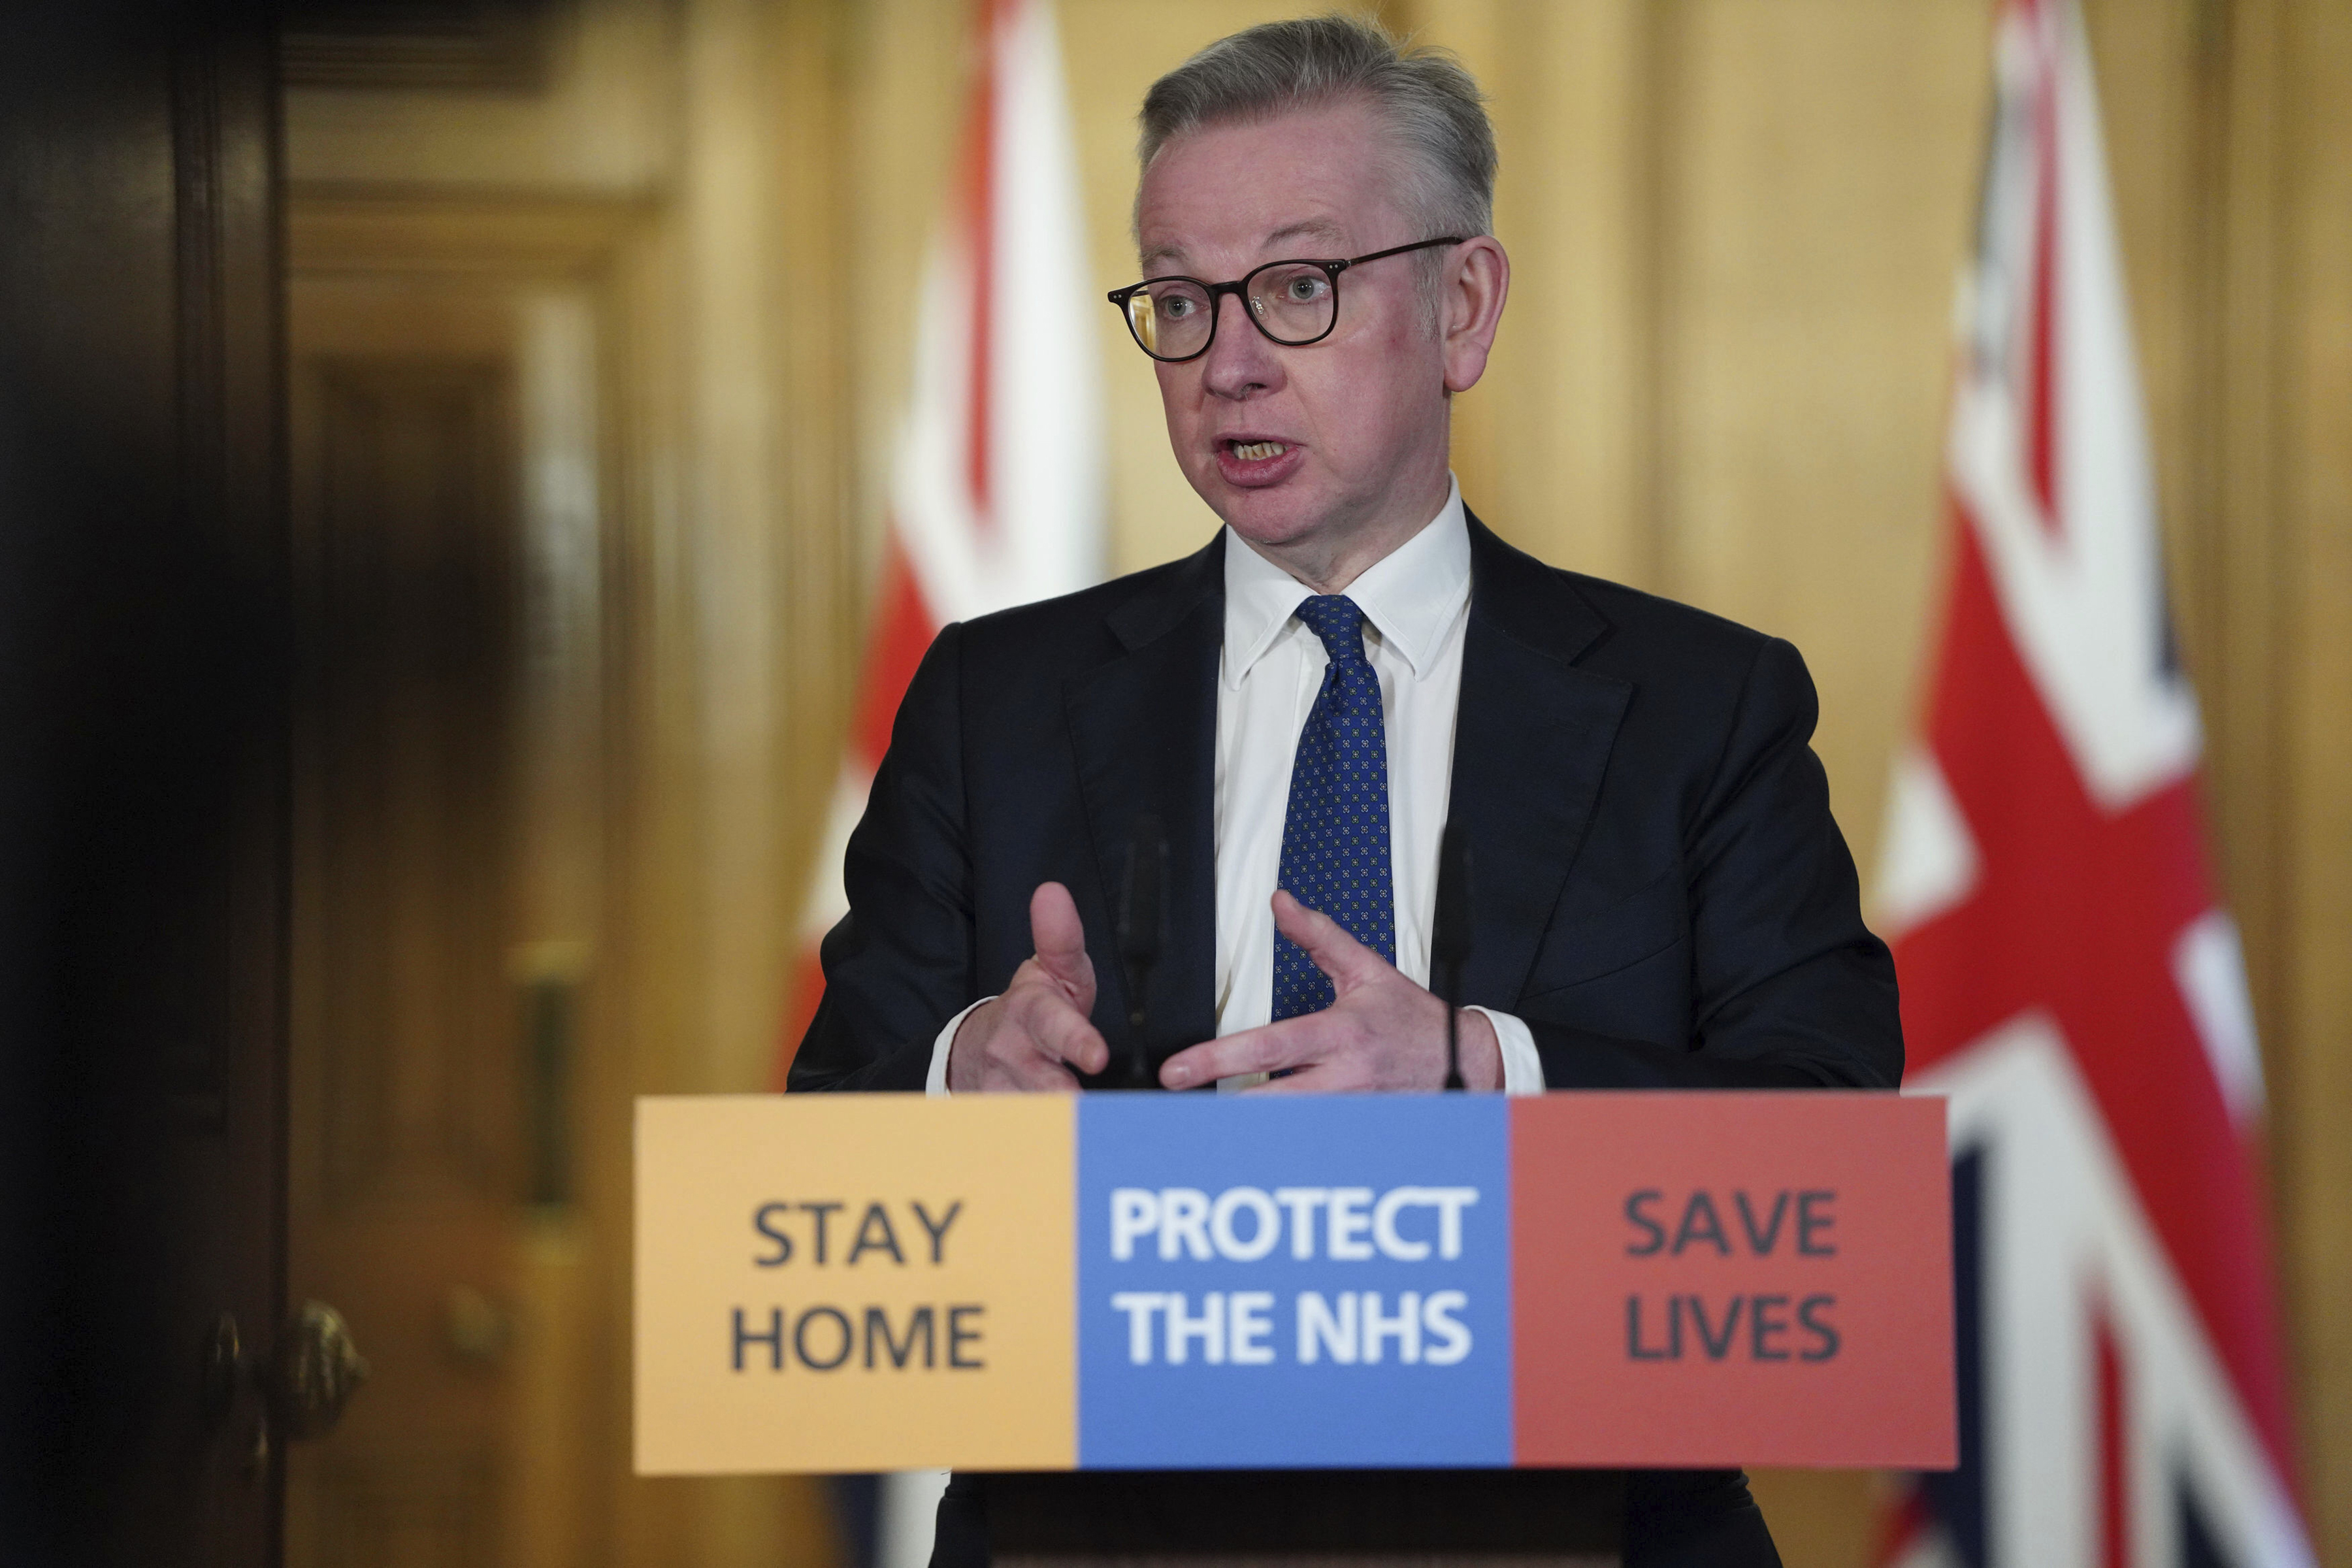 In this image made available by British government because no media allowed into 10 Downing Street because of the coronavirus pandemic, showing British lawmaker Michael Gove holding a Digital Press Conference on COVID-19, in 10 Downing Street, London, Friday March 27, 2020. Prime Minister Boris Johnson has tested positive for the COVID-19 coronavirus Friday along with other members of the government, and has self isolated. (Pippa Fowles / No 10 Downing Street via AP)